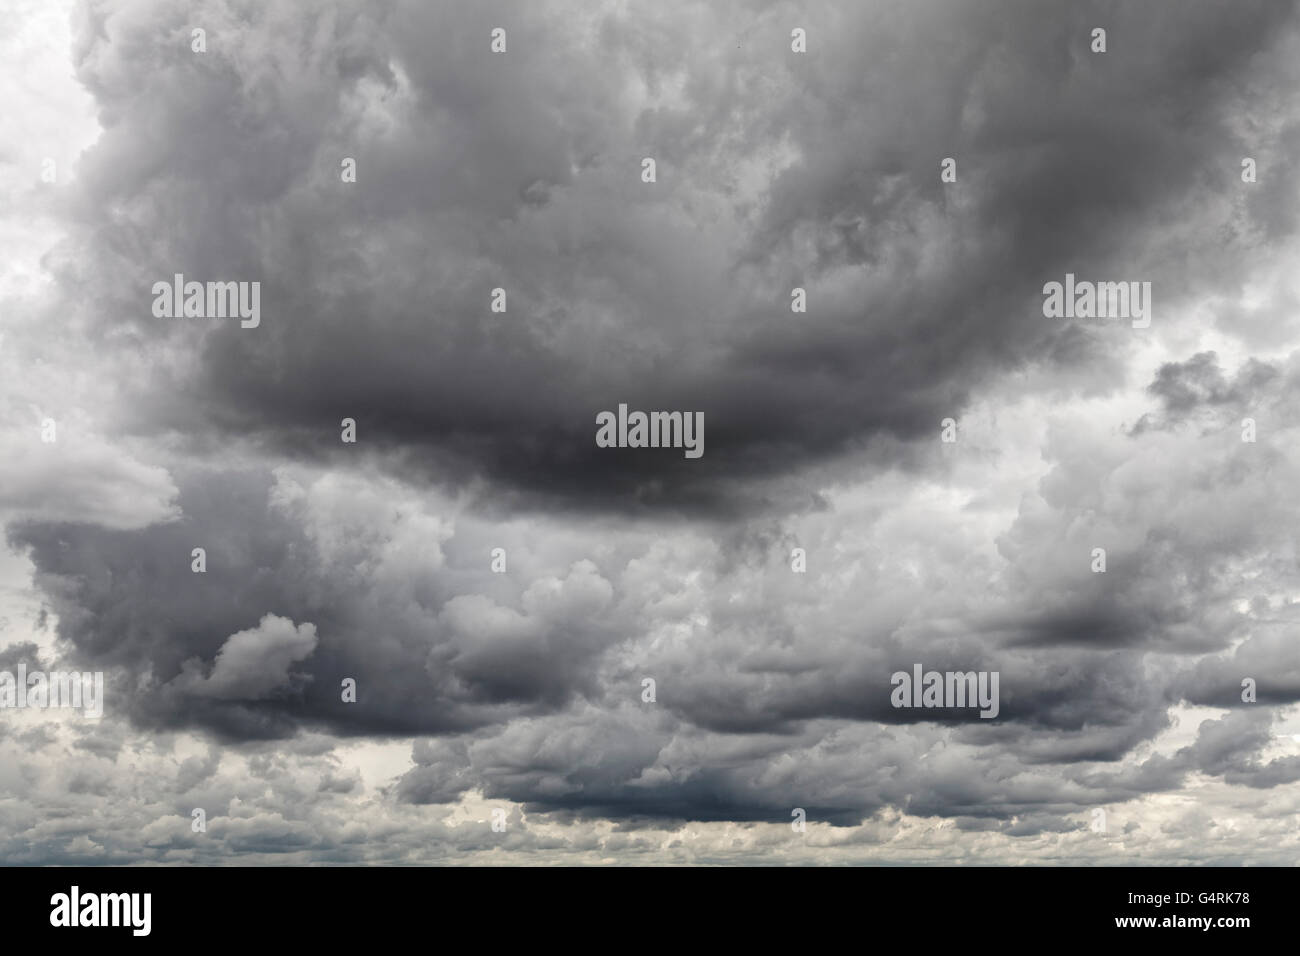 Dramatic cloudy sky with heavy rain clouds, storm clouds in the sky, Nuremberg, Bavaria, Germany Stock Photo